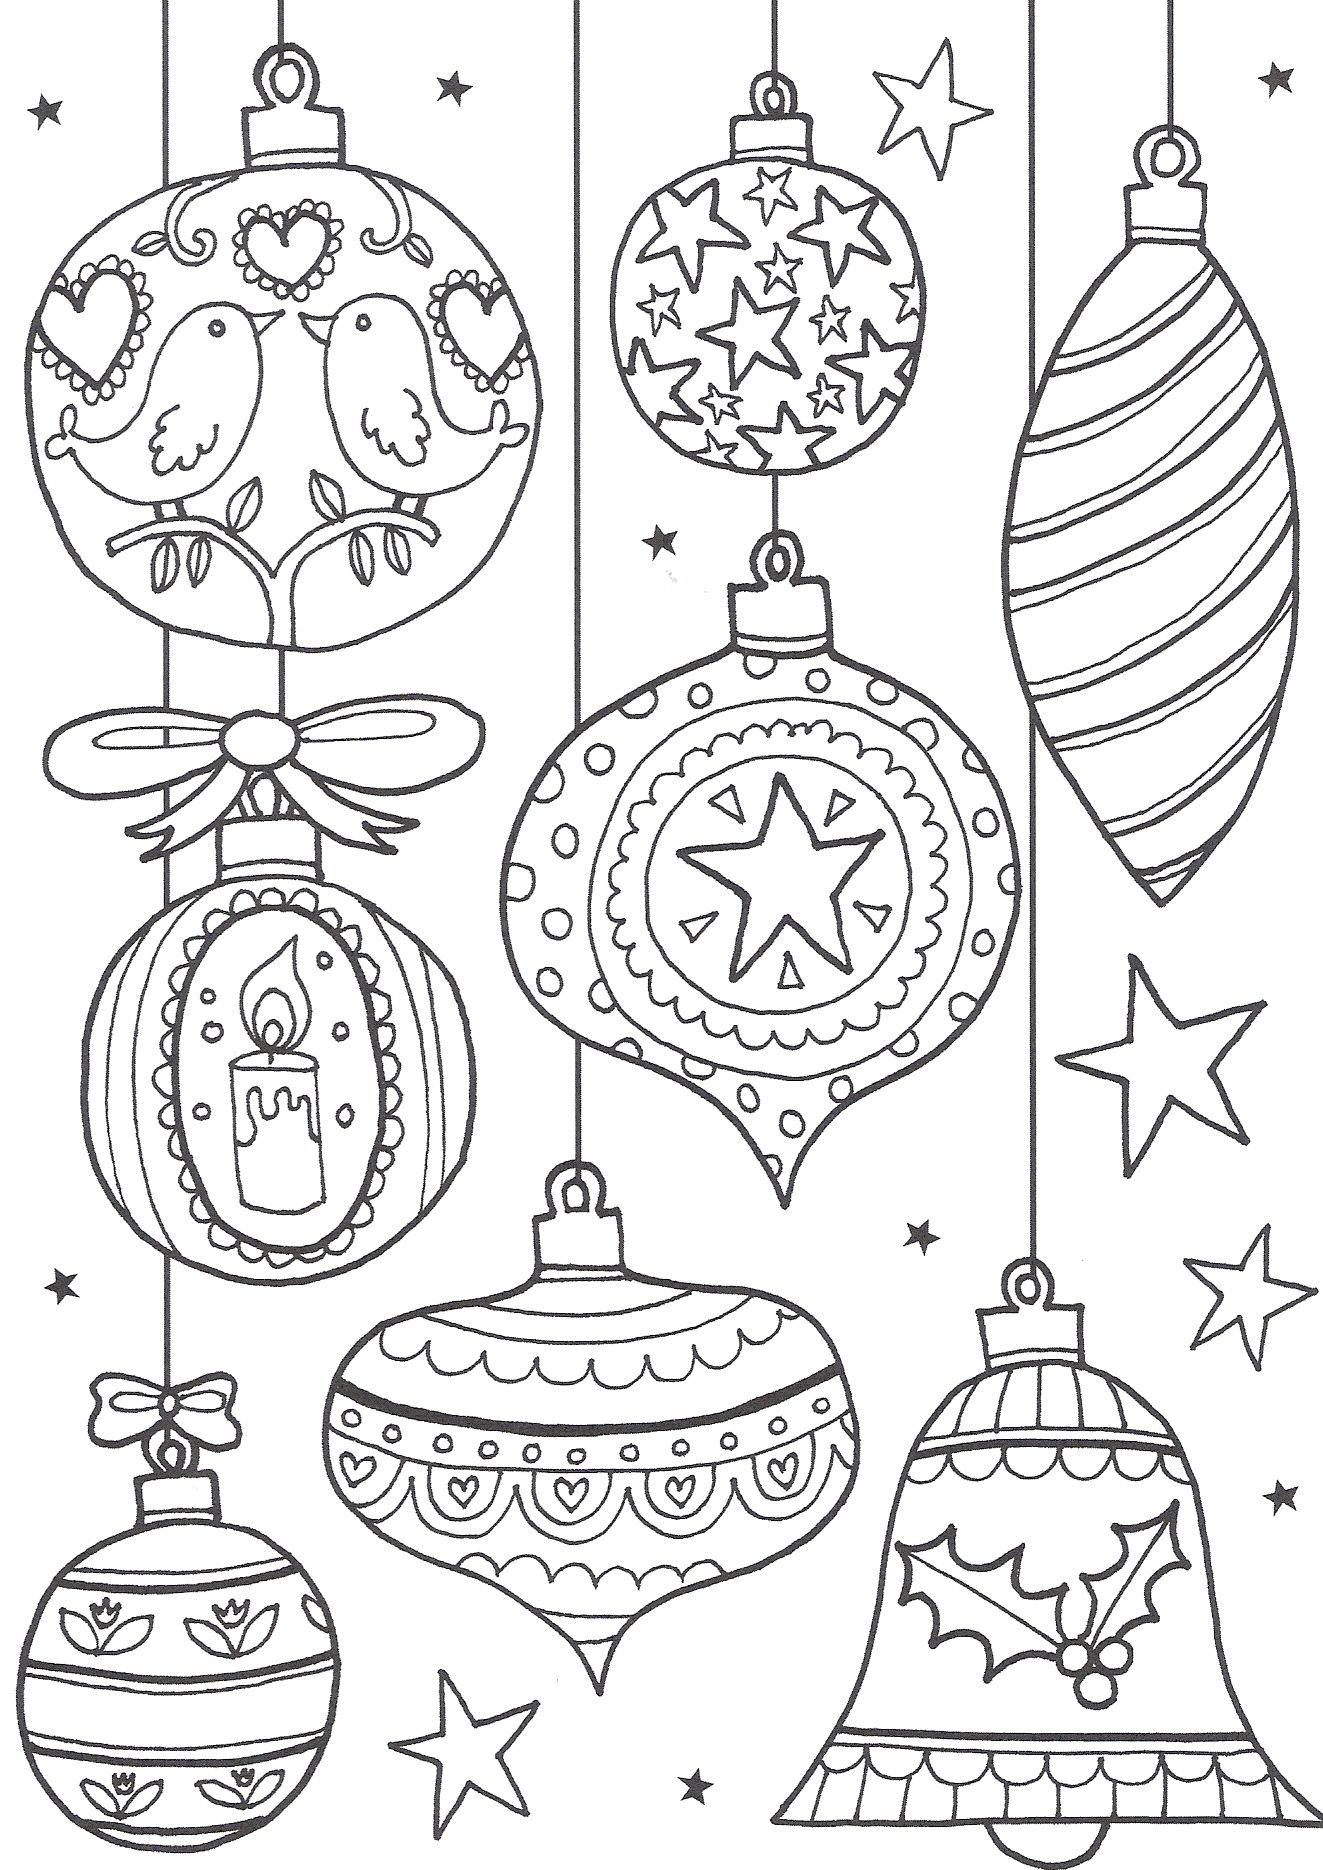 Christmas Coloring Contest Pages With Free Colouring For Adults The Ultimate Roundup